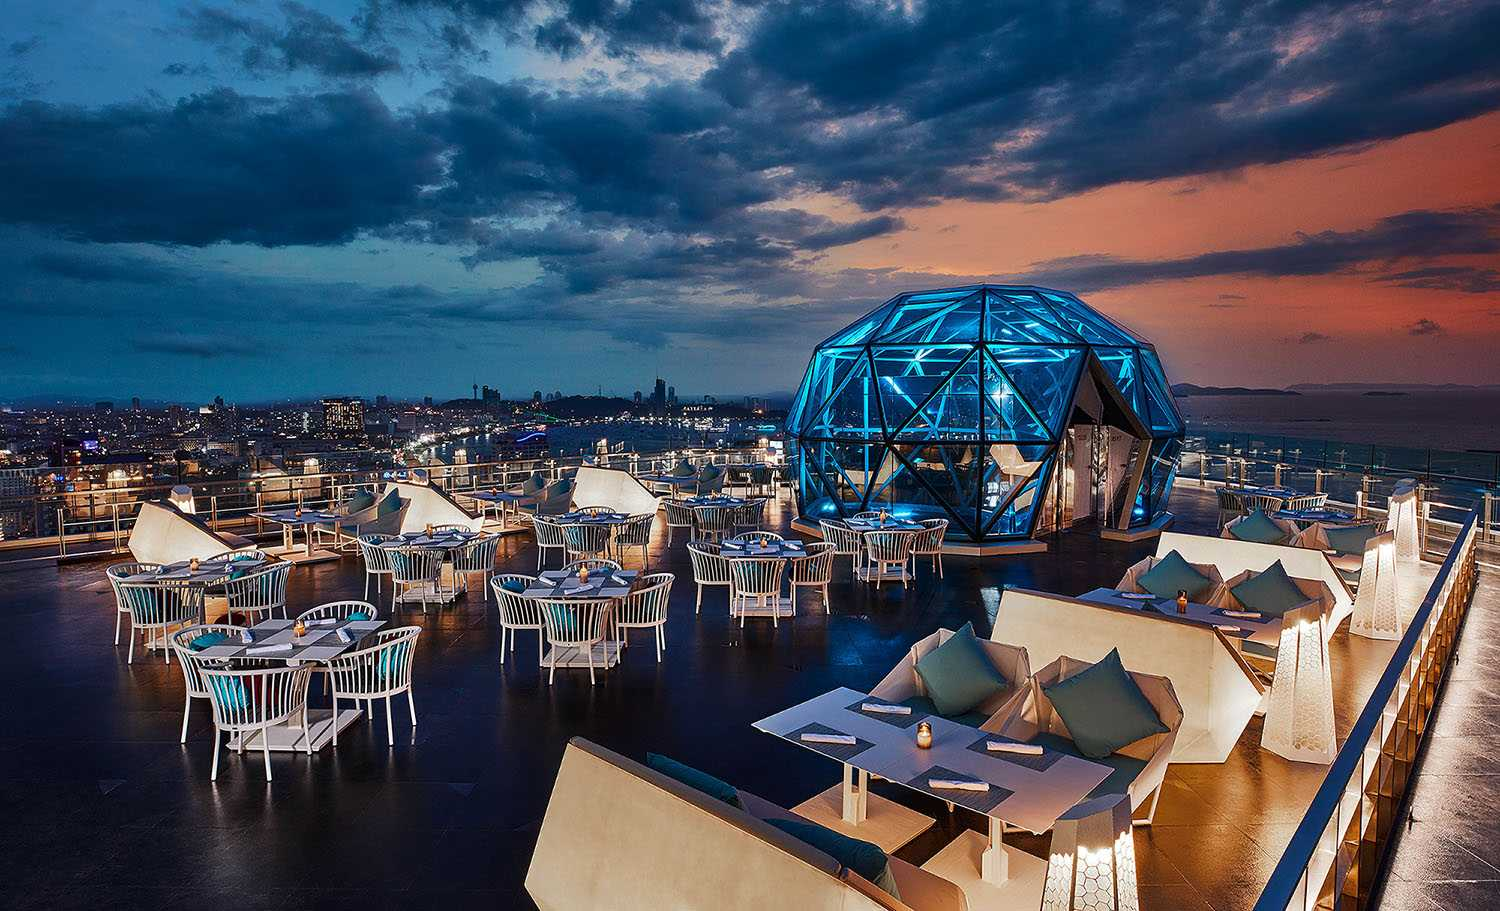 Sky Bar with glass dome and magical view of Pattaya during sunset at The Sky 32 Pattaya